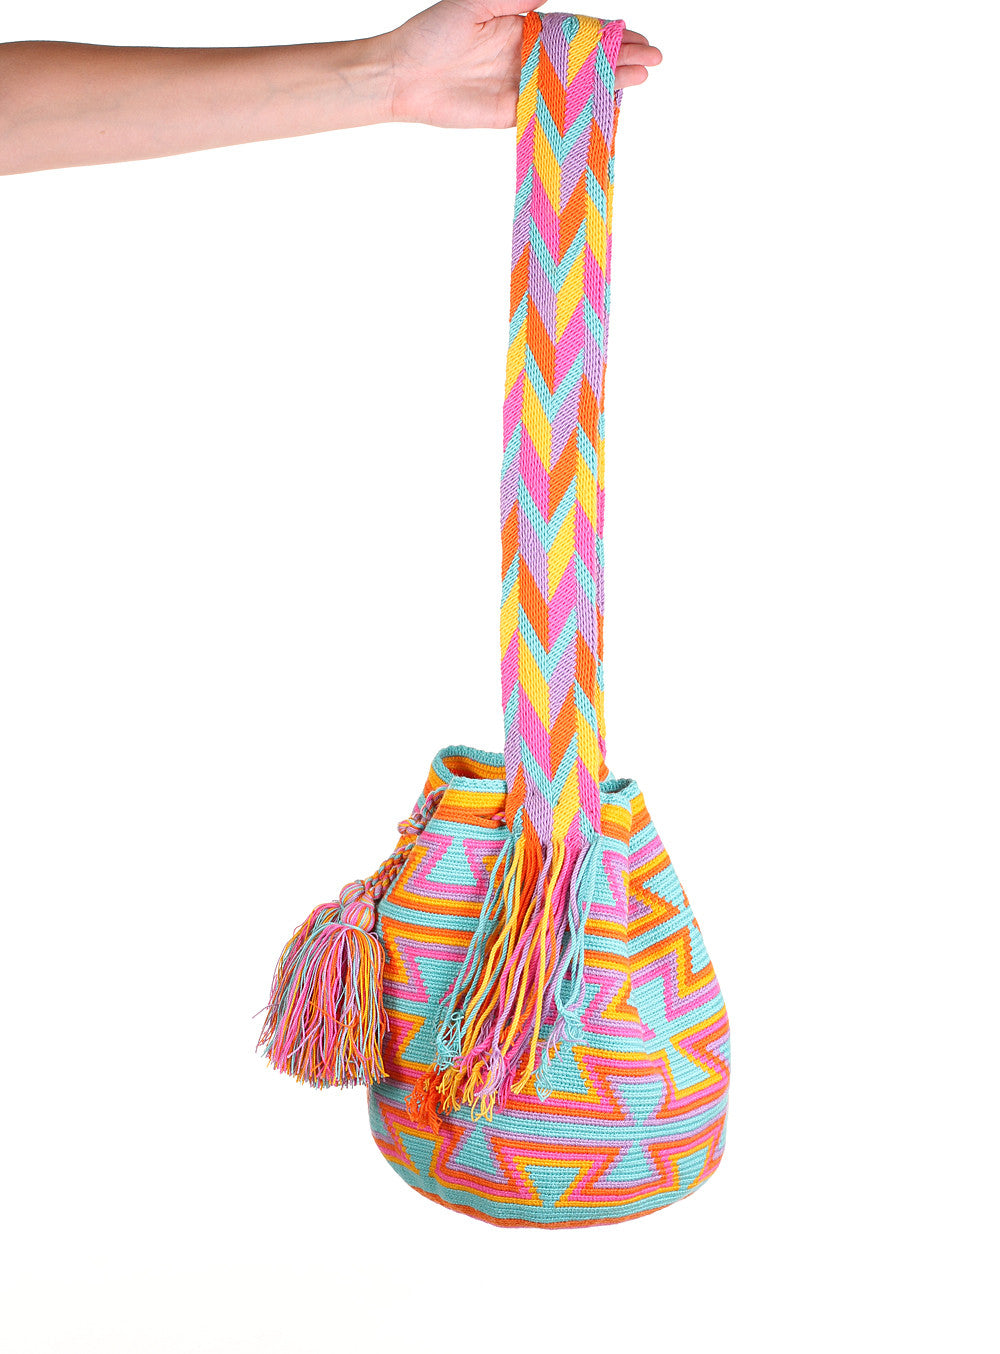 WB111 - Crochet Wayuu Bucket Bag – One-of-a-kind Design